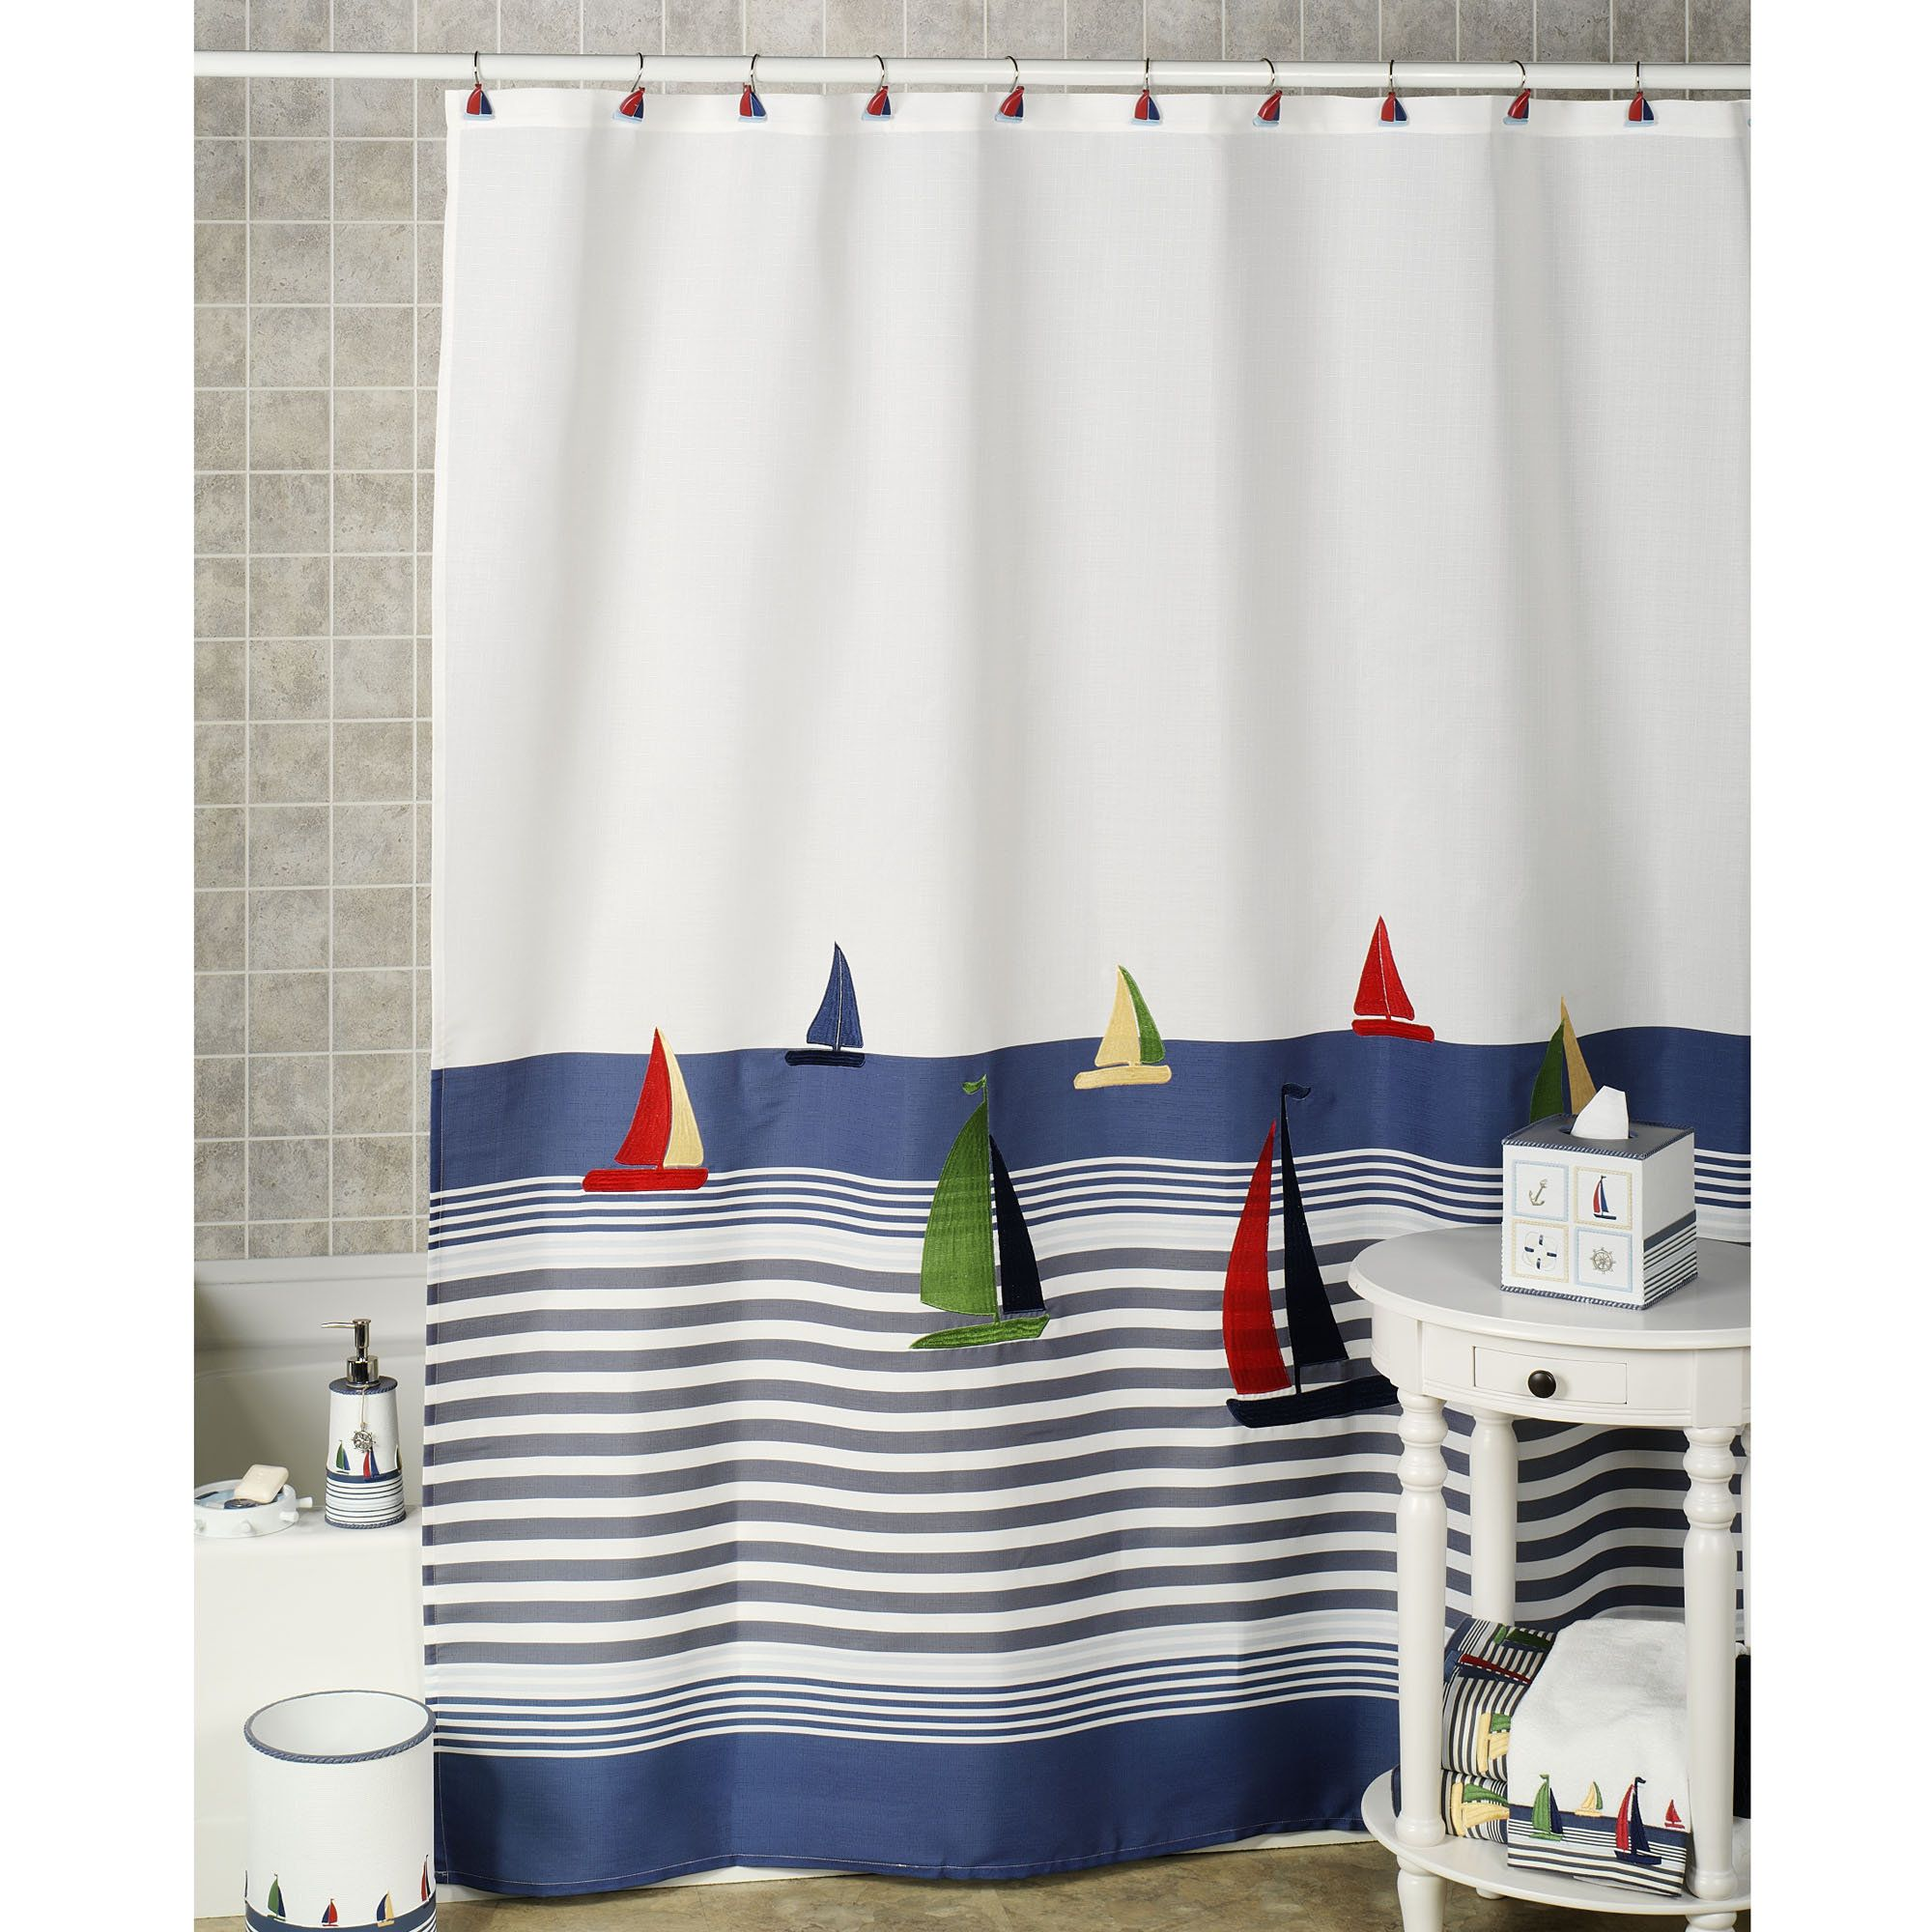 Blue and white bathroom accessories - Nautical Shower Curtains And Bath Accessories Home Regatta Shower Curtain